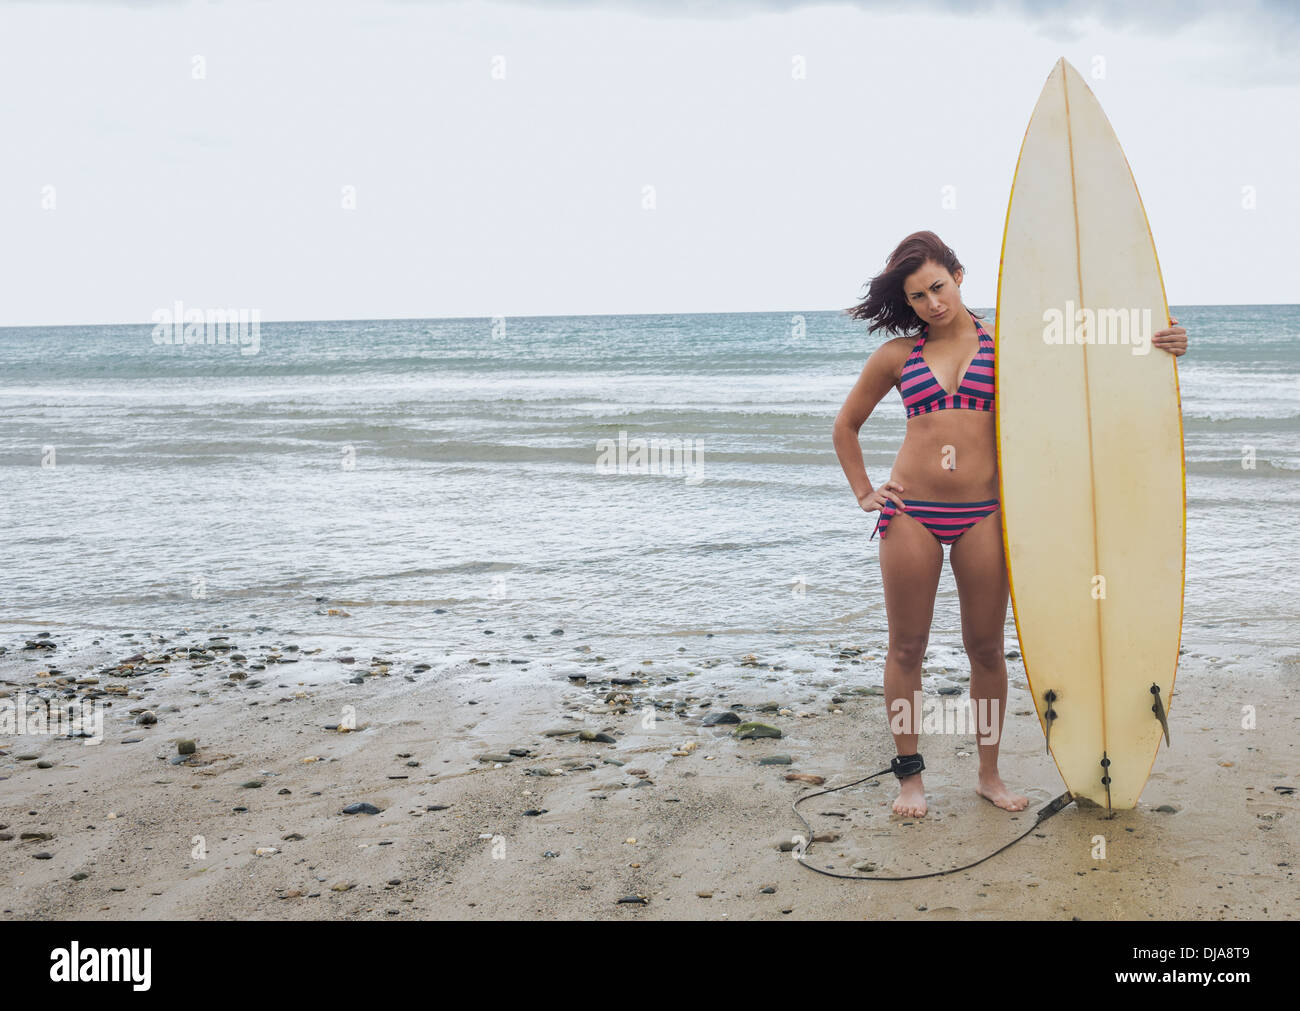 Full length of a bikini woman holding surfboard at beach - Stock Image